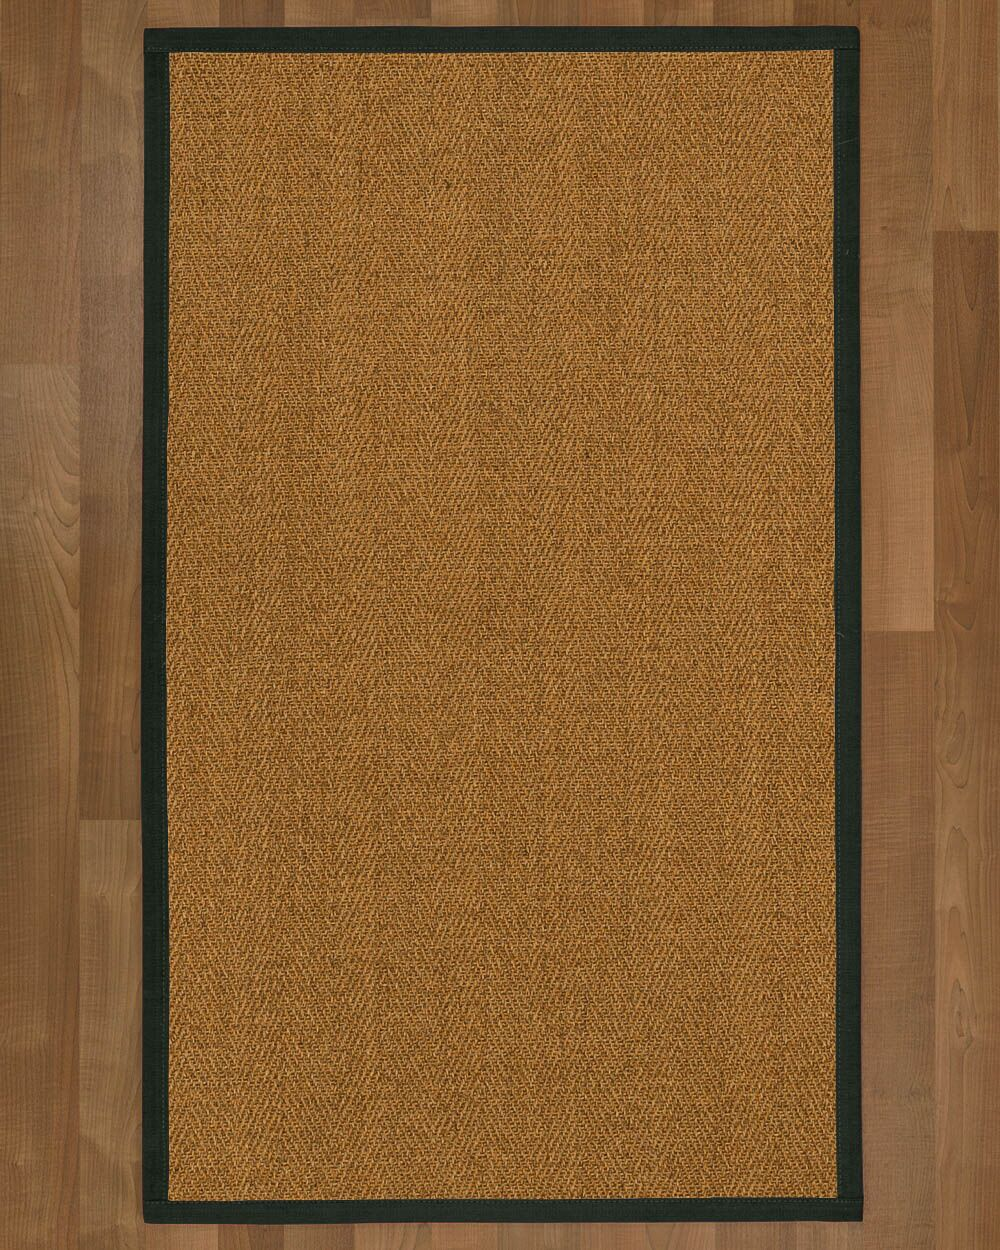 Asmund Border Hand-Woven Brown/Metal Area Rug Rug Size: Rectangle 5' x 8', Rug Pad Included: Yes